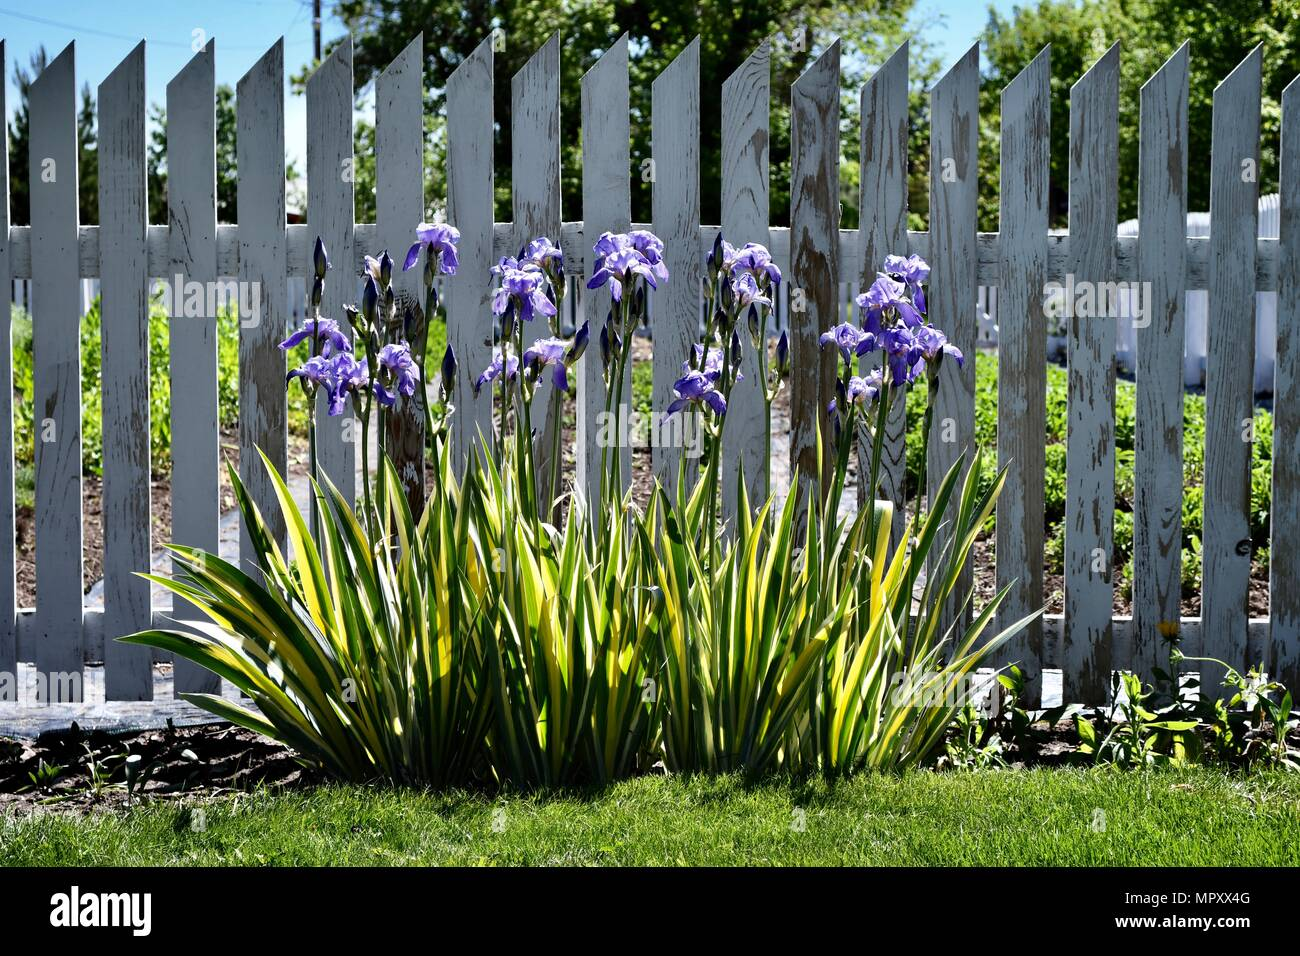 Purple irisses in front of a white picket fence - Stock Image